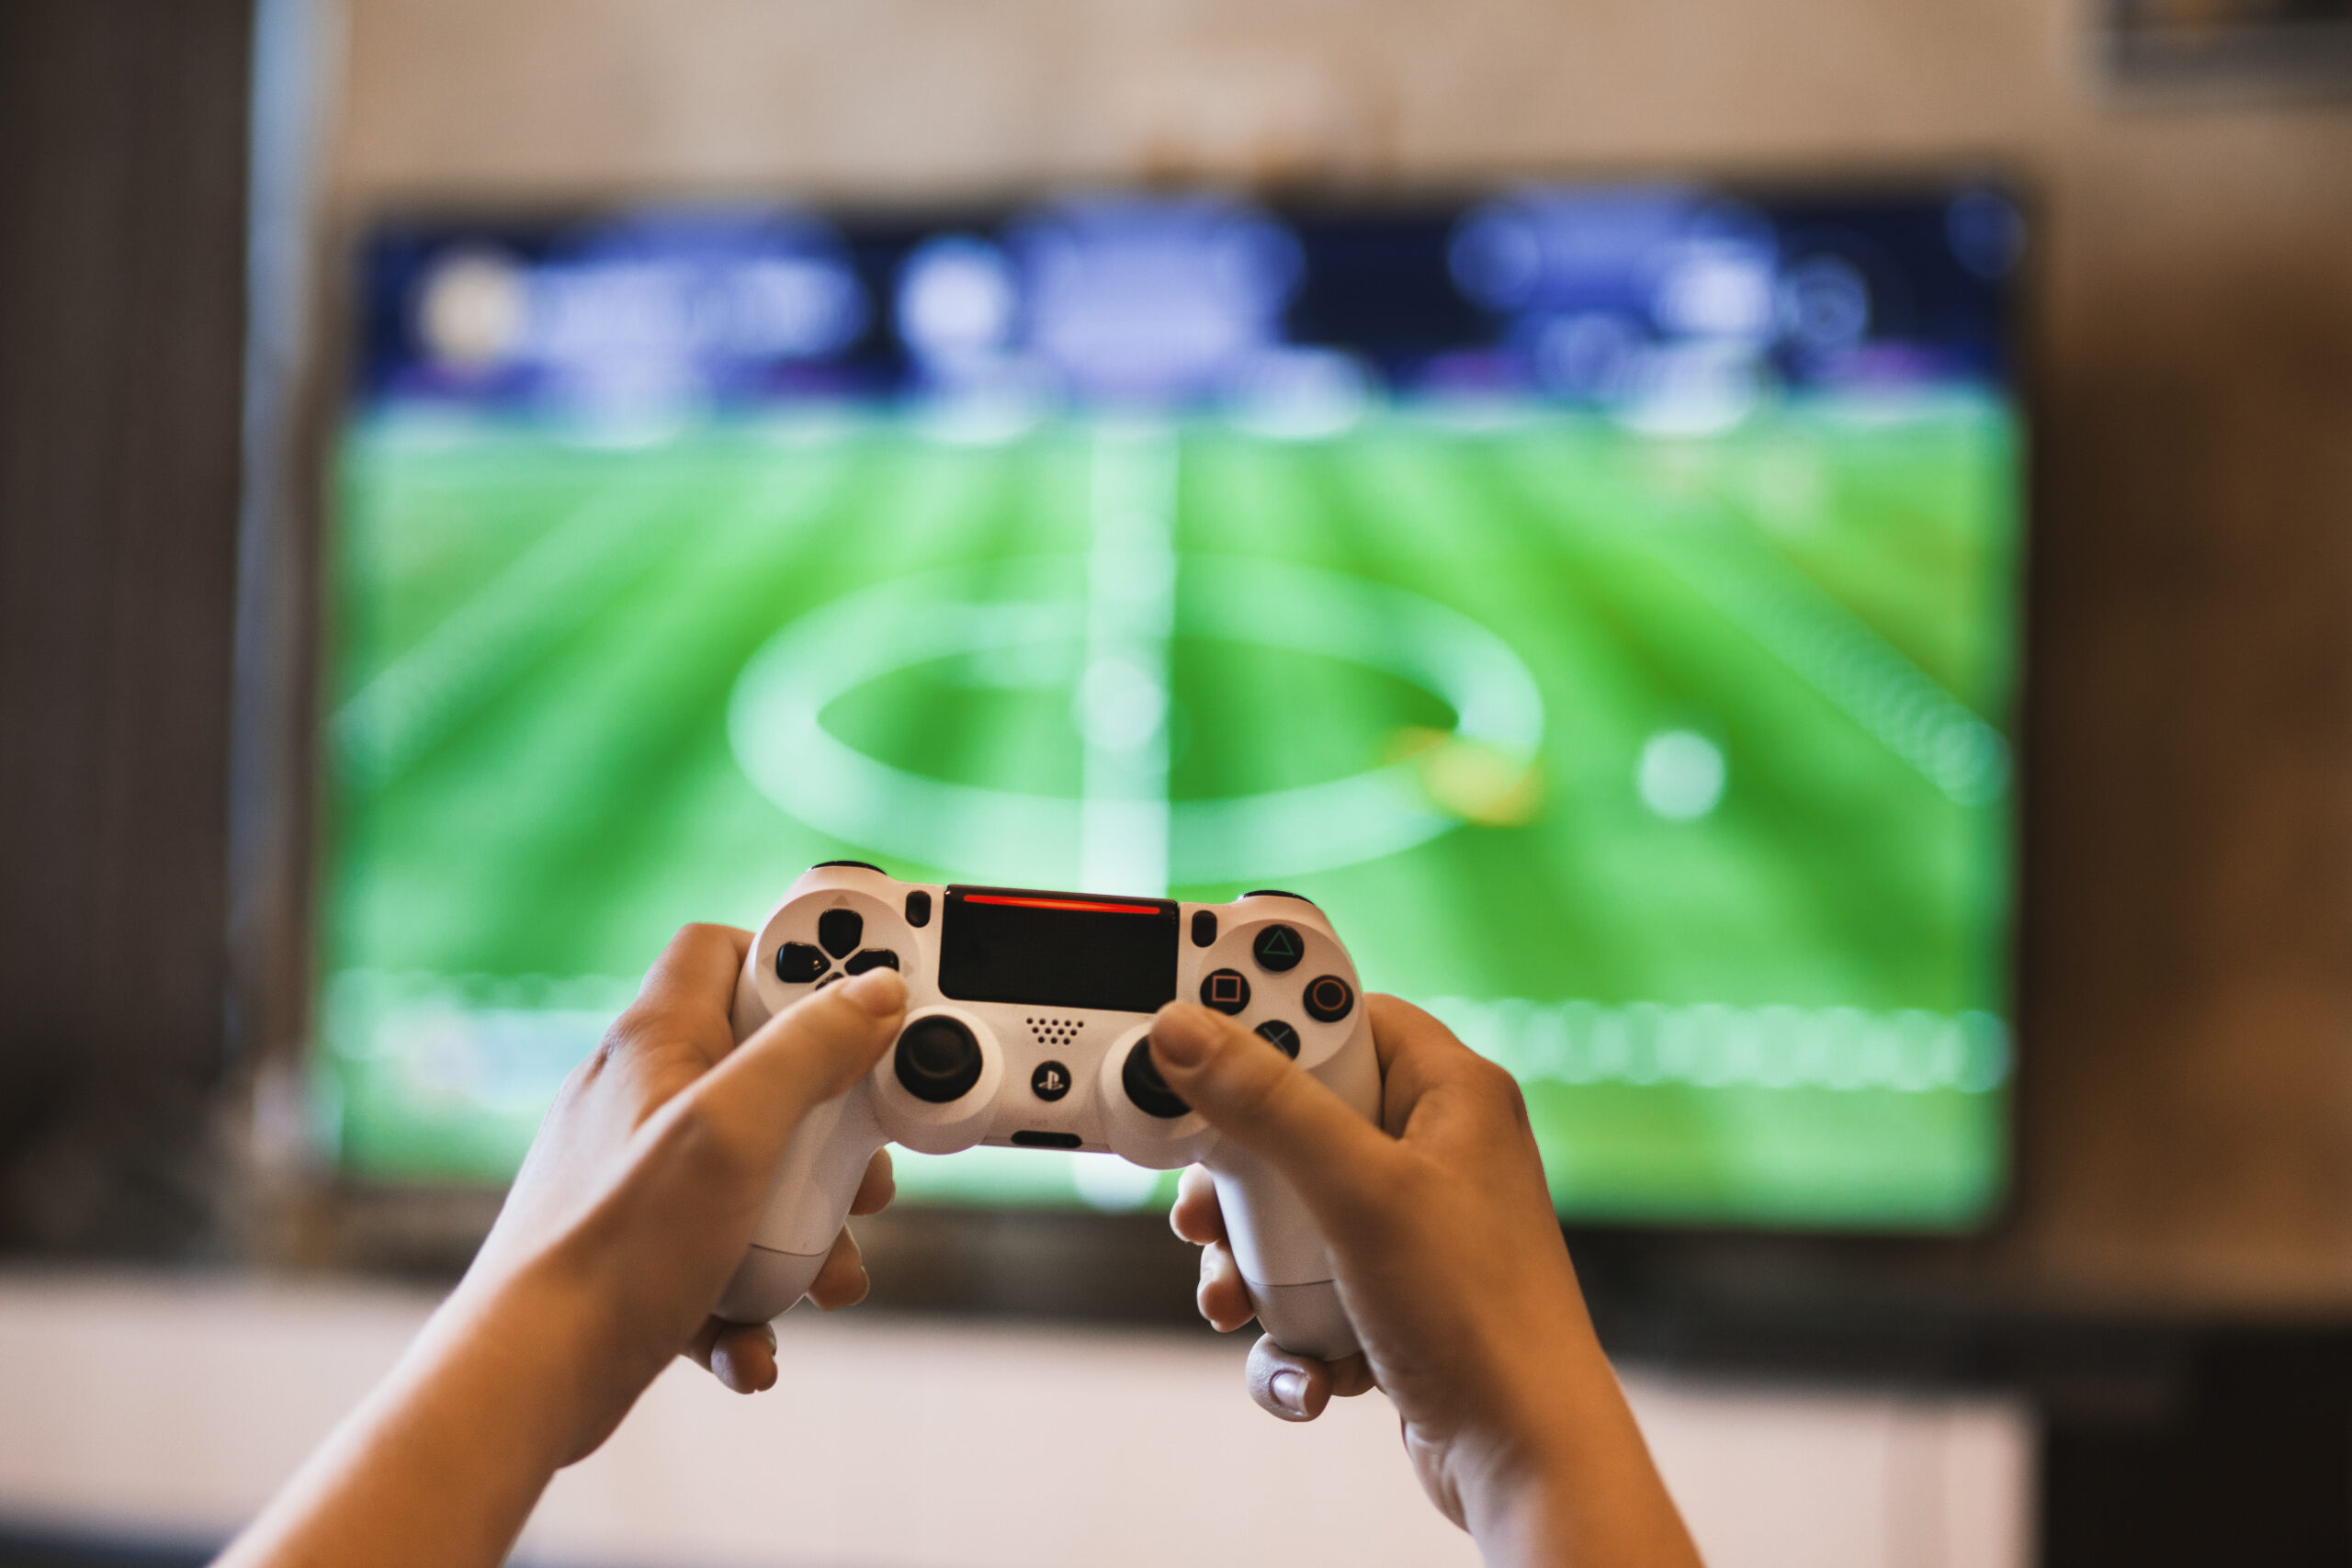 How to Make the Most of Games at Work